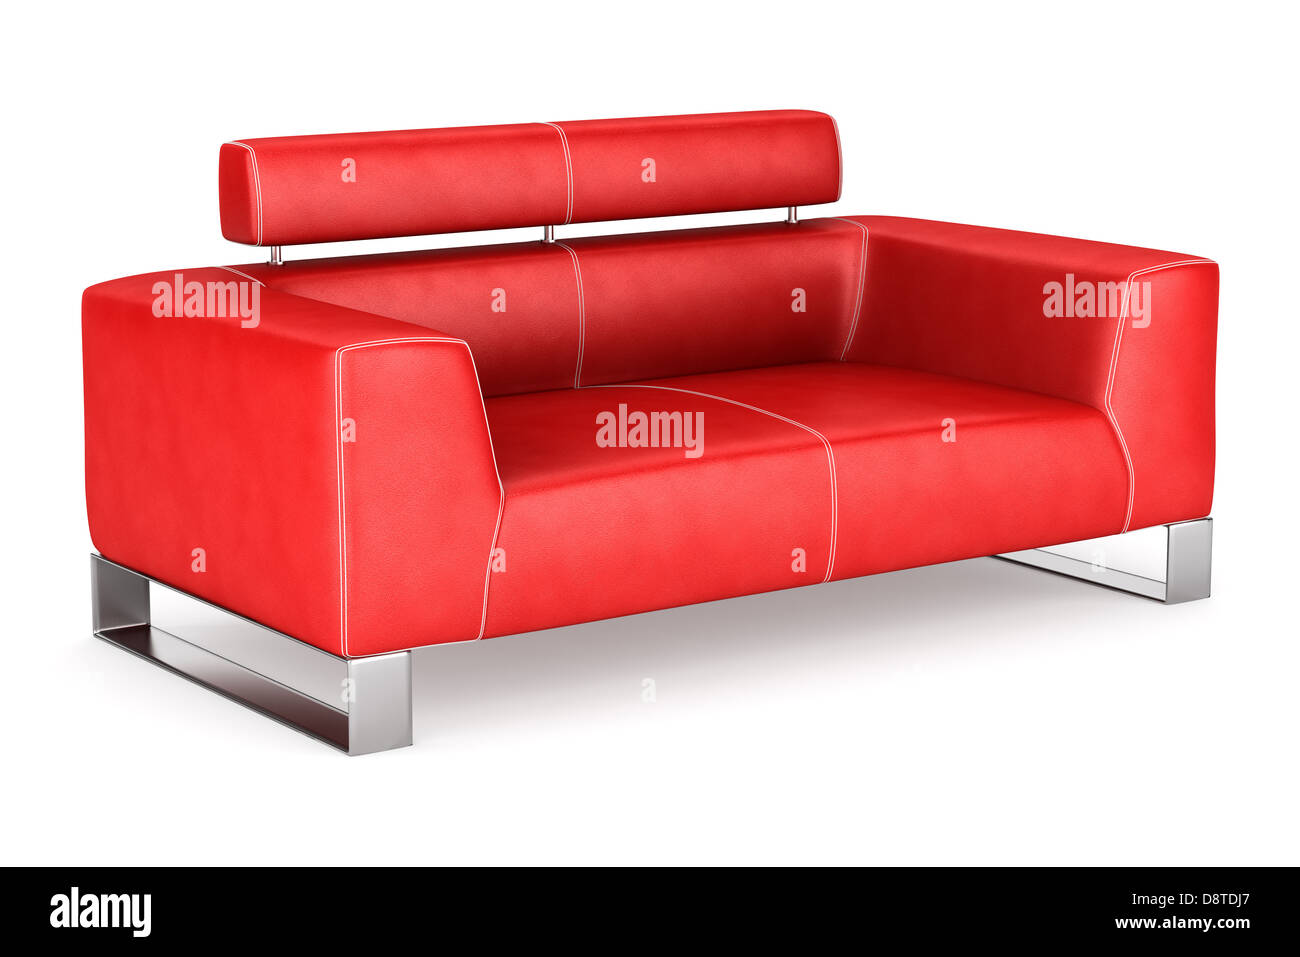 modern red leather couch isolated on white - Stock Image